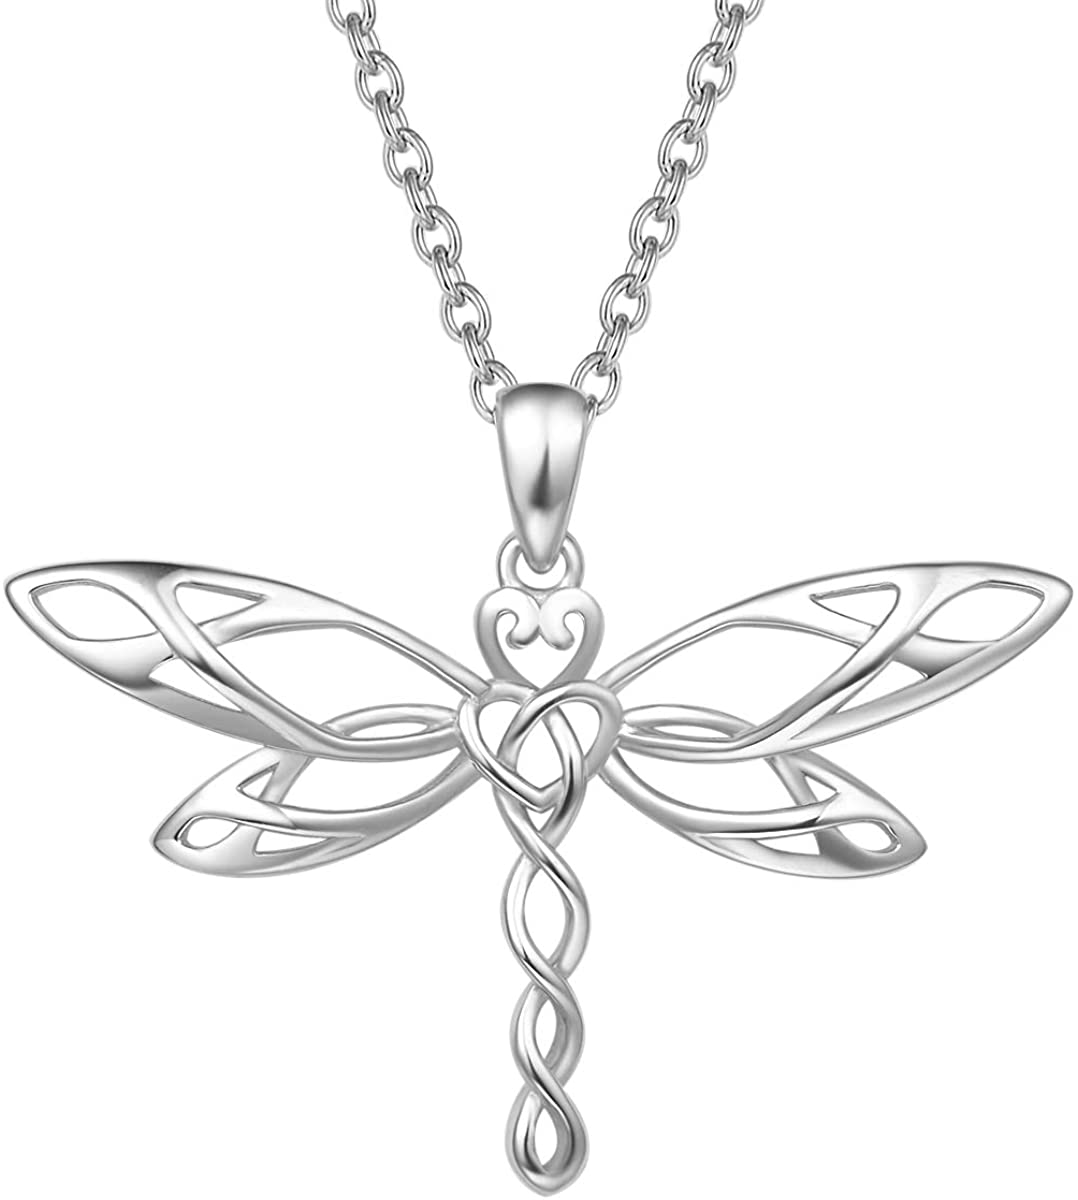 FANCIME Sterling Silver Vivid Dragonfly Pendant Necklace Irish Celtic Heart Shaped Knot Antiqued Animals Necklace Dainty Fine Jewelry for Women Teen Girls,16+ 2